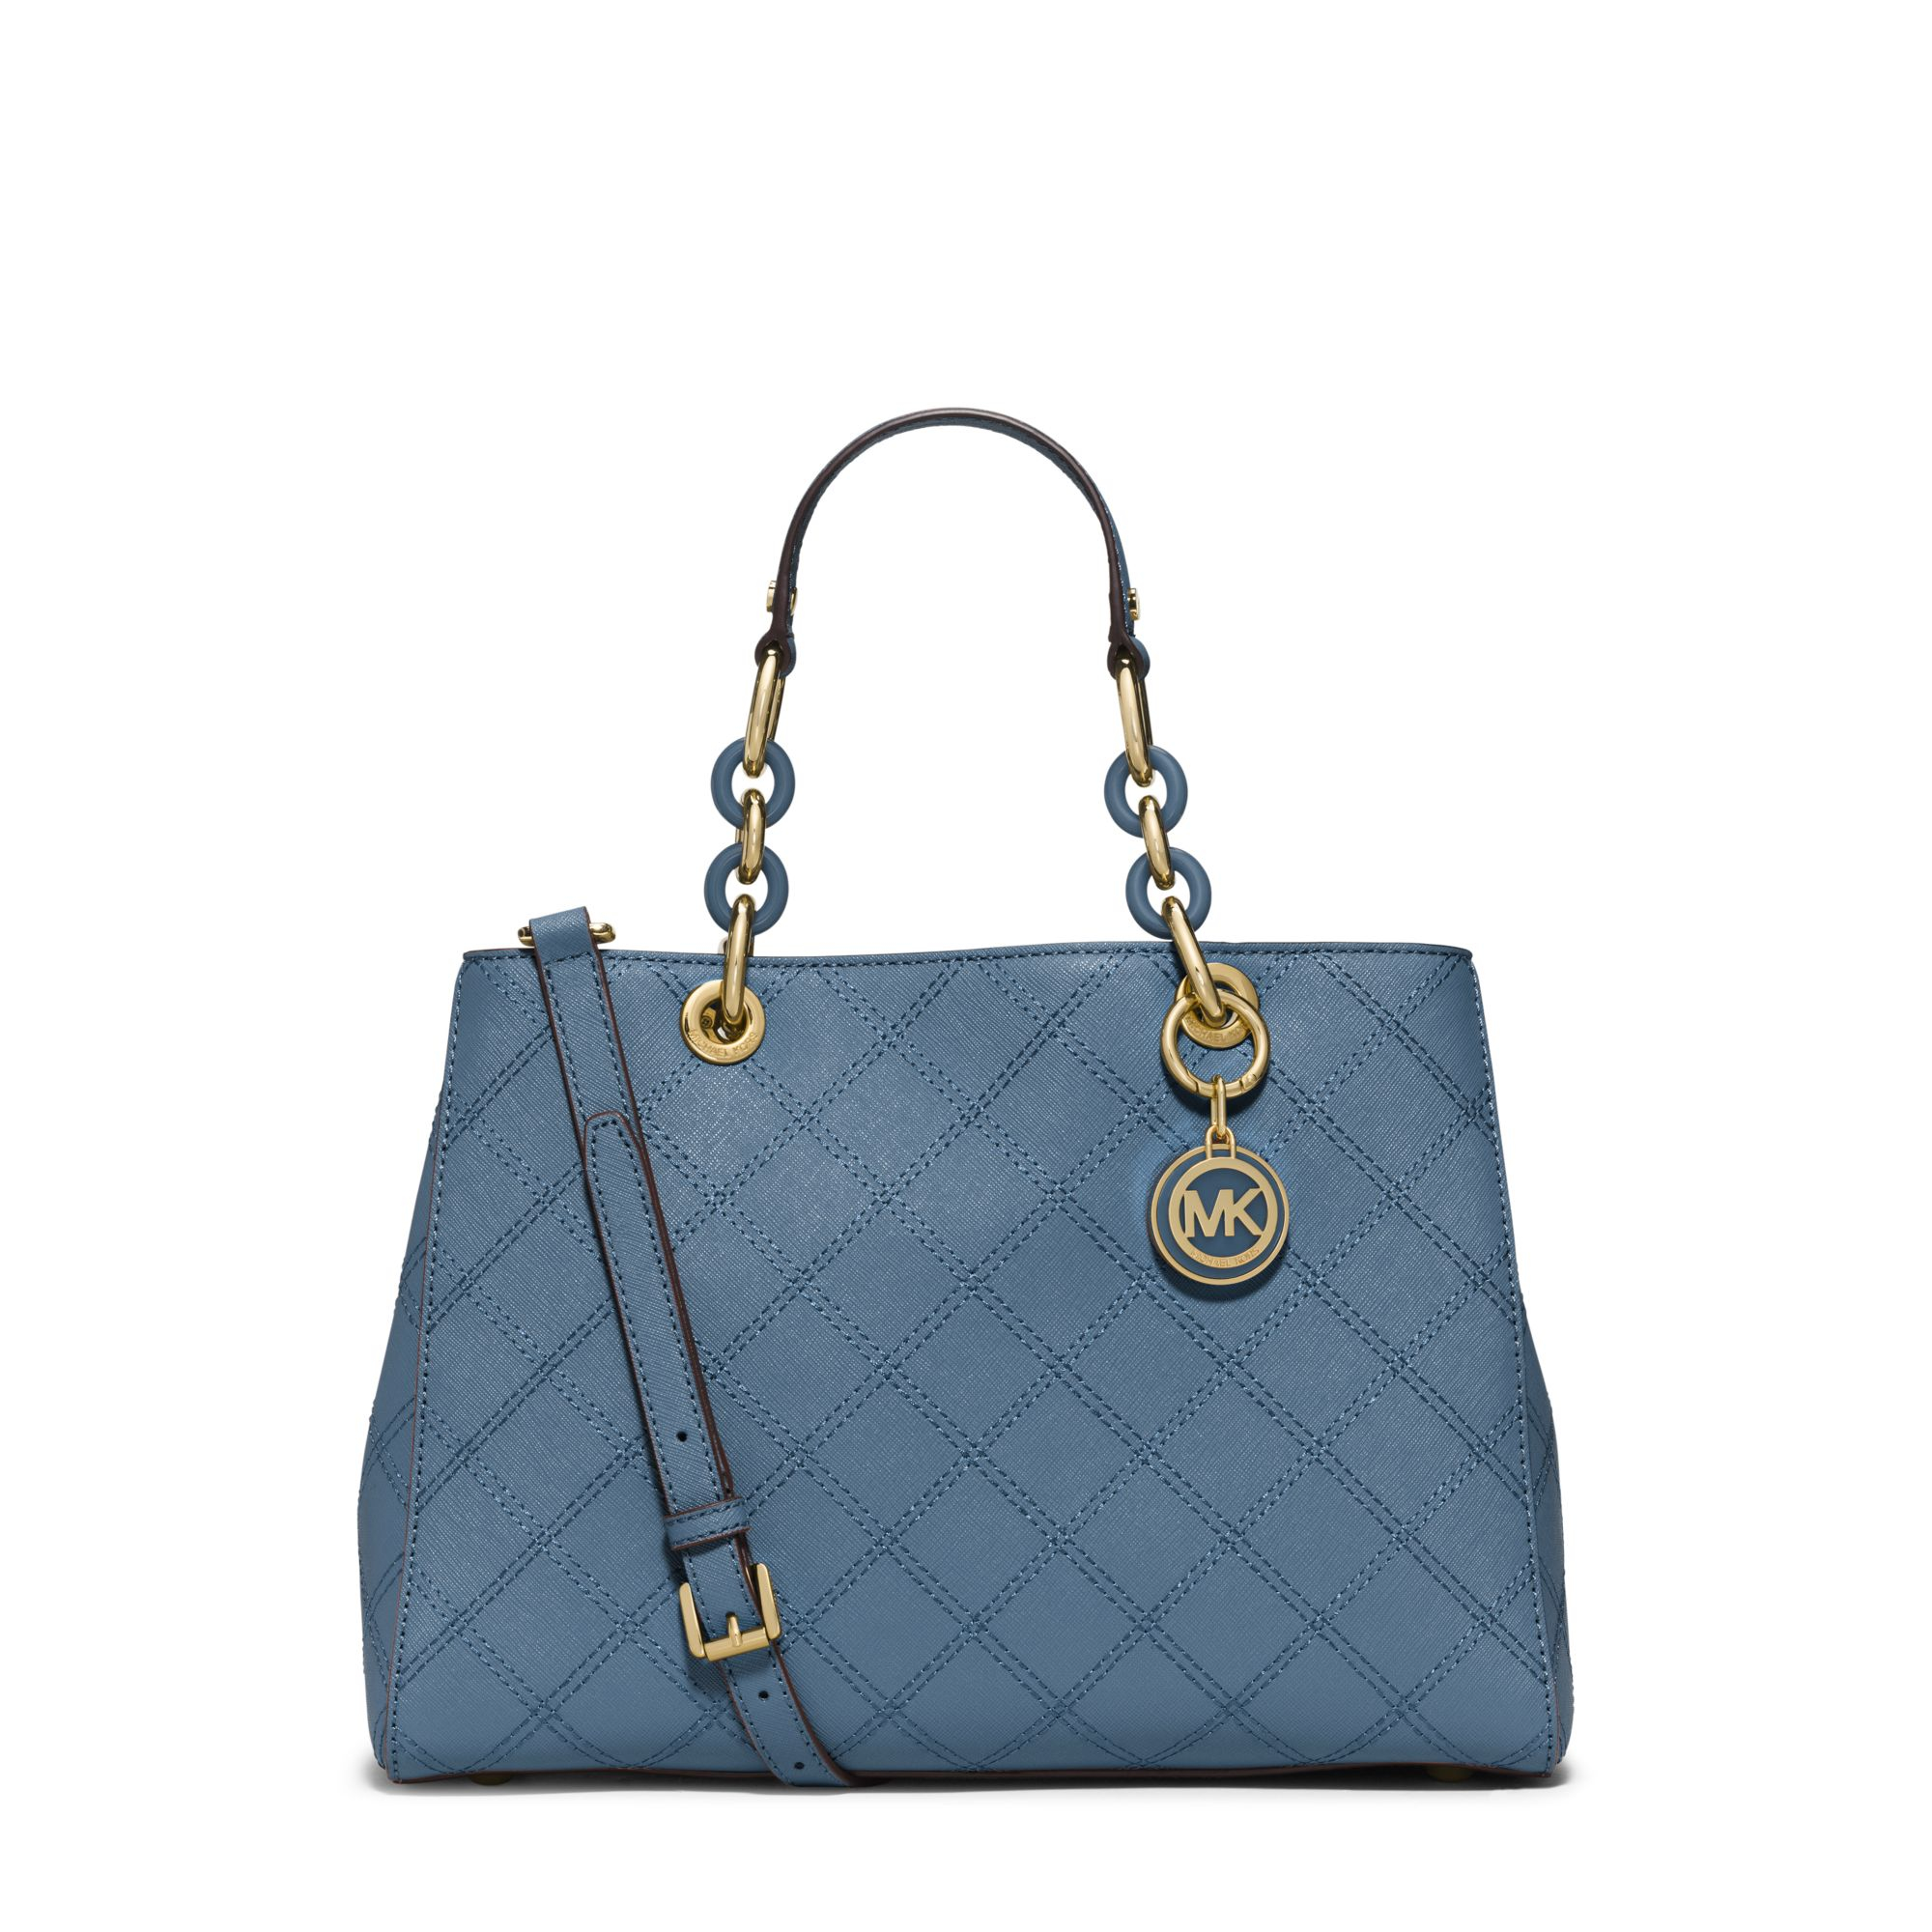 f2f45c5e7fab Lyst - Michael Kors Cynthia Medium Quilted-leather Satchel in Blue